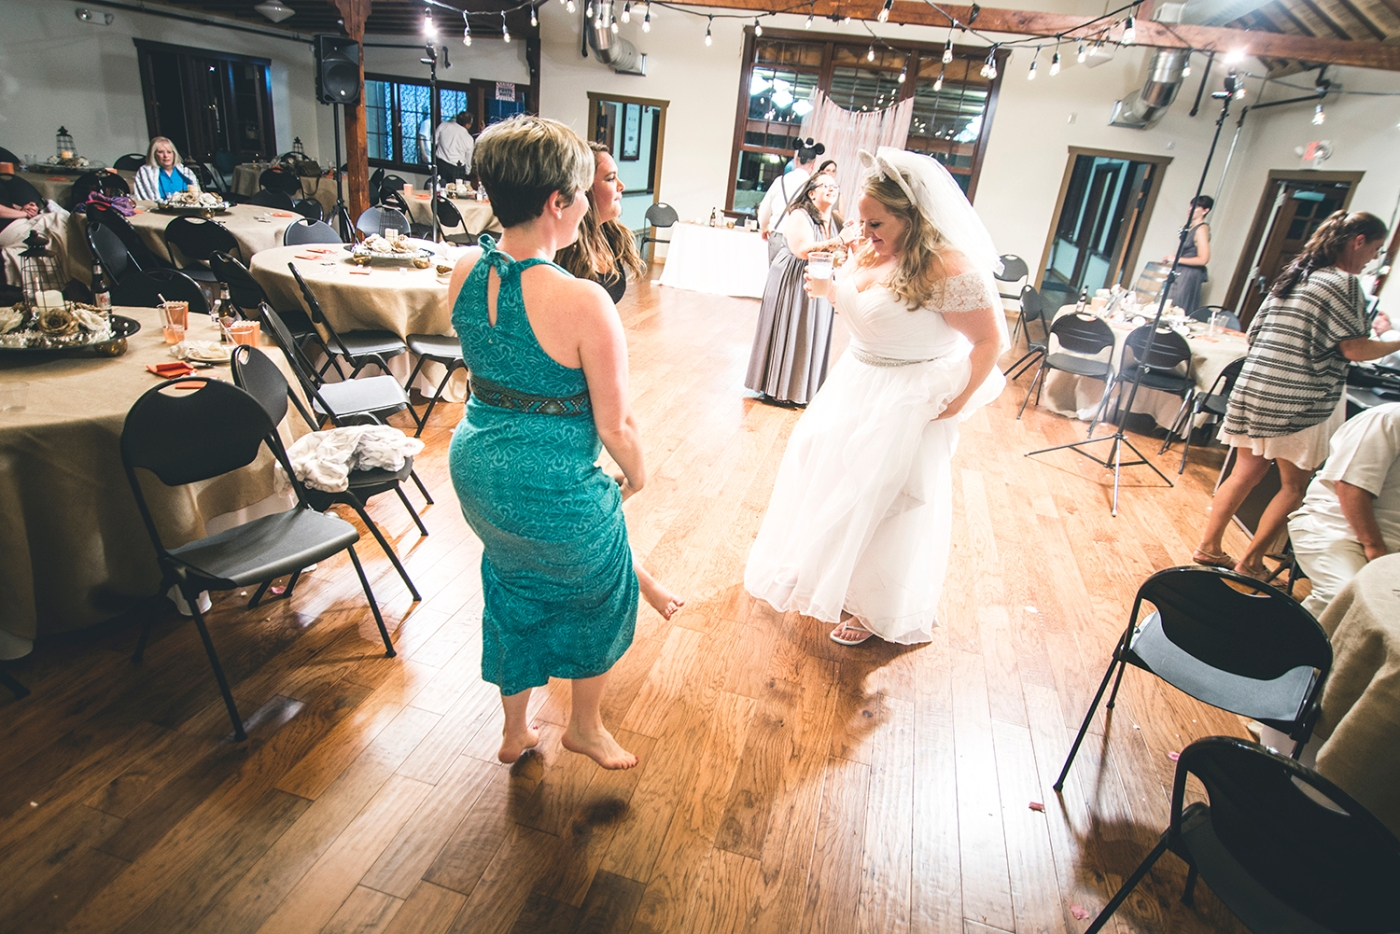 Jane_S_Seattle_photography_Kadie_and_Steve_2016_Des_Moines_Marina_Wedding_DSC_2785